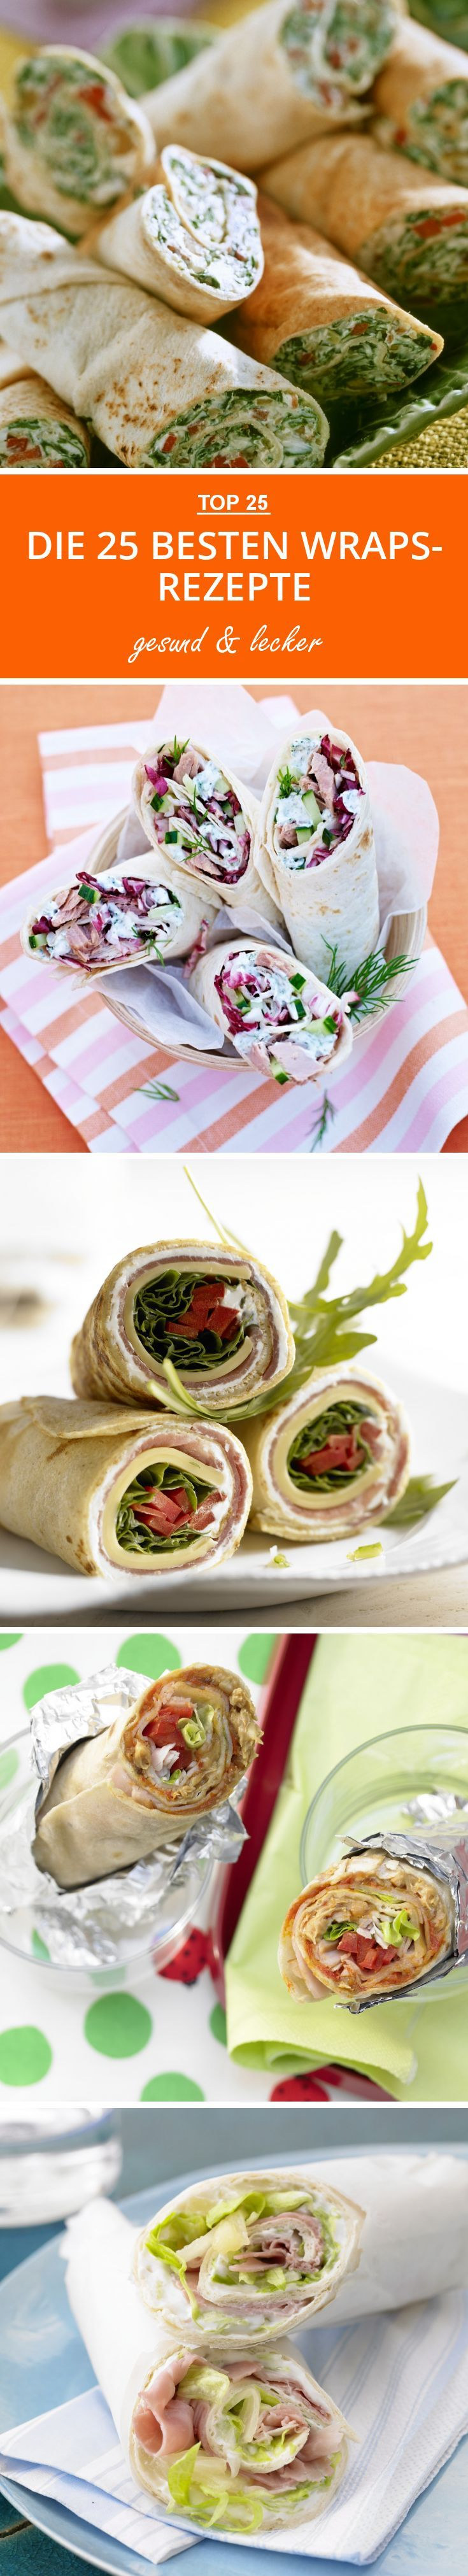 Wraps Rezepte Vegetarisch Die Besten Wrap Zepte Fingerfood Party Brunch Wraps Rezept